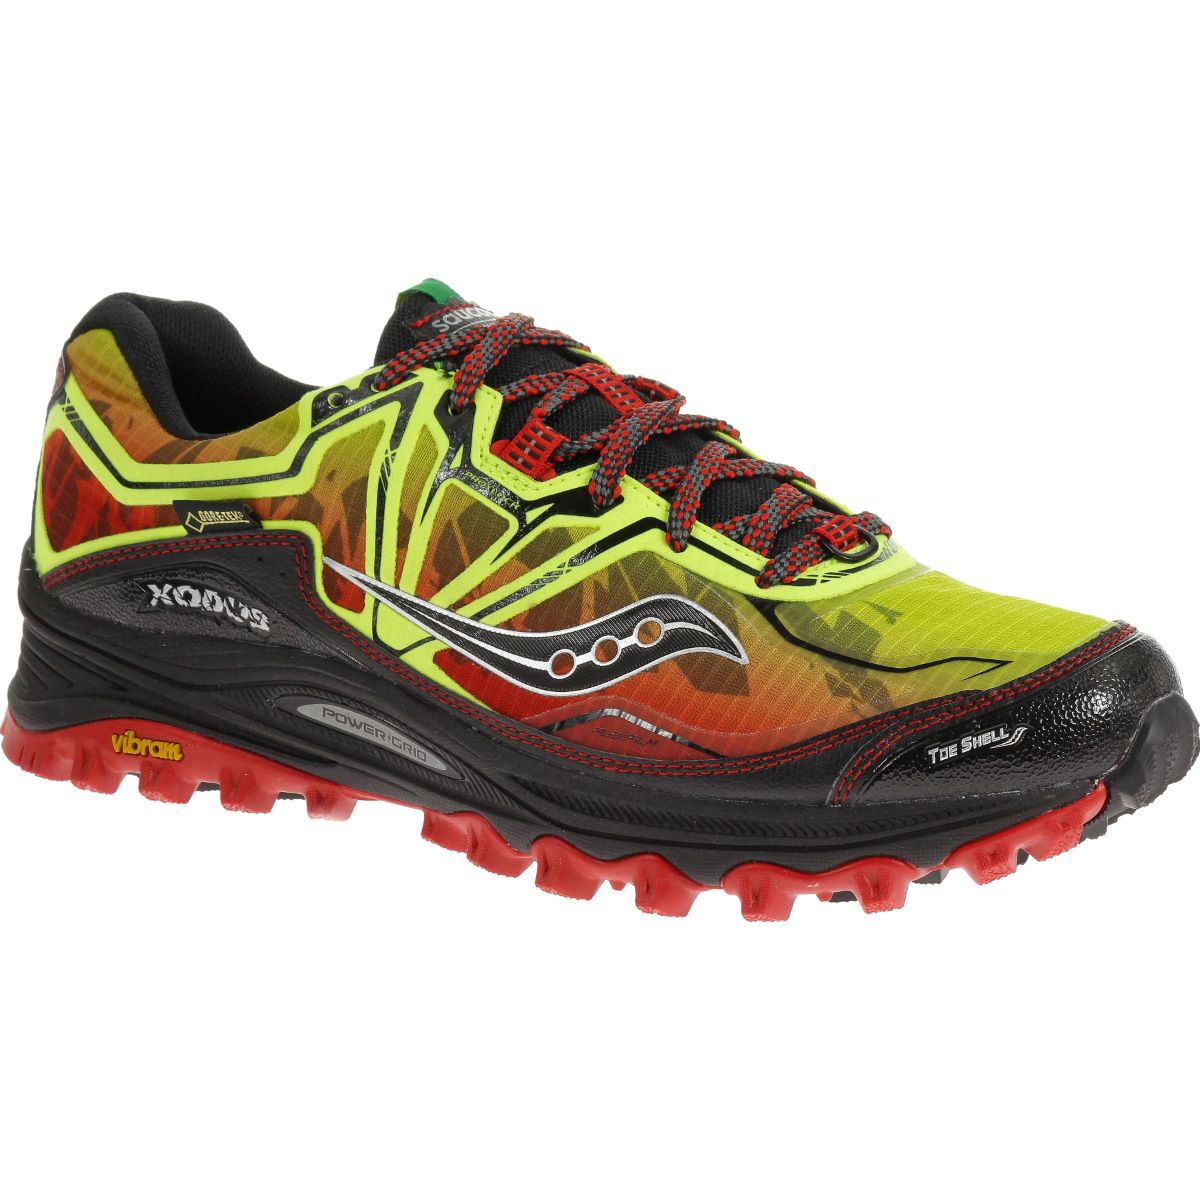 Saucony Xodus 6.0 GTX Shoes (SS16) Offroad Running Shoes